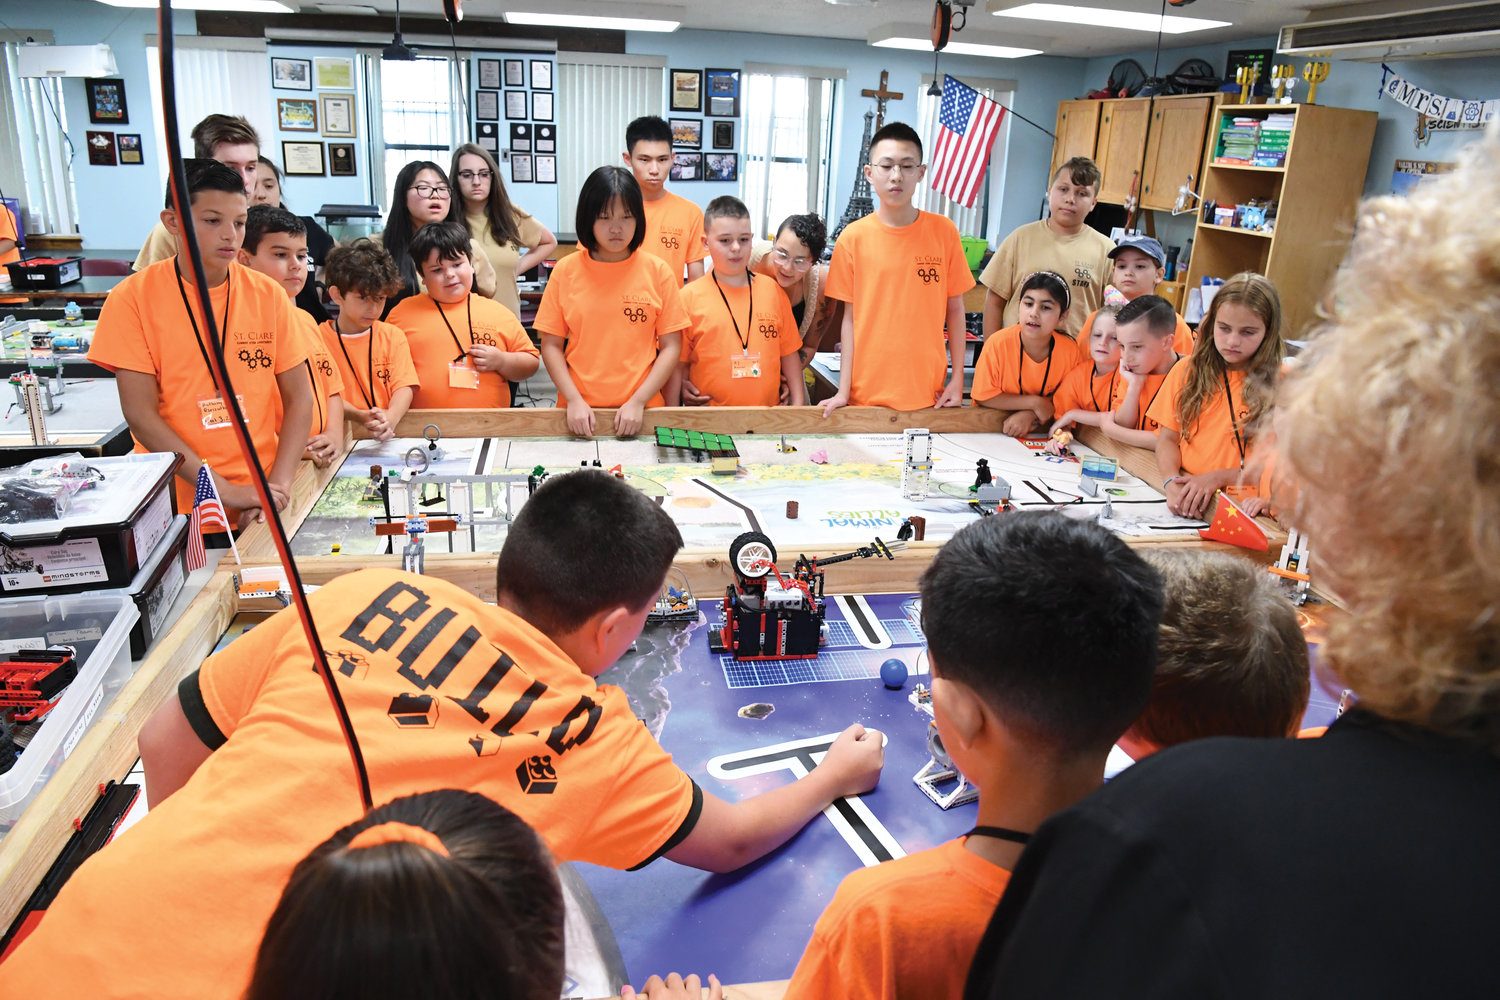 Youths watch fellow students July 10 during robot demonstrations at the Summer STEM and Robotics Adventure Program at St. Clare's School on Staten Island. The program included four cultural exchange students from China.